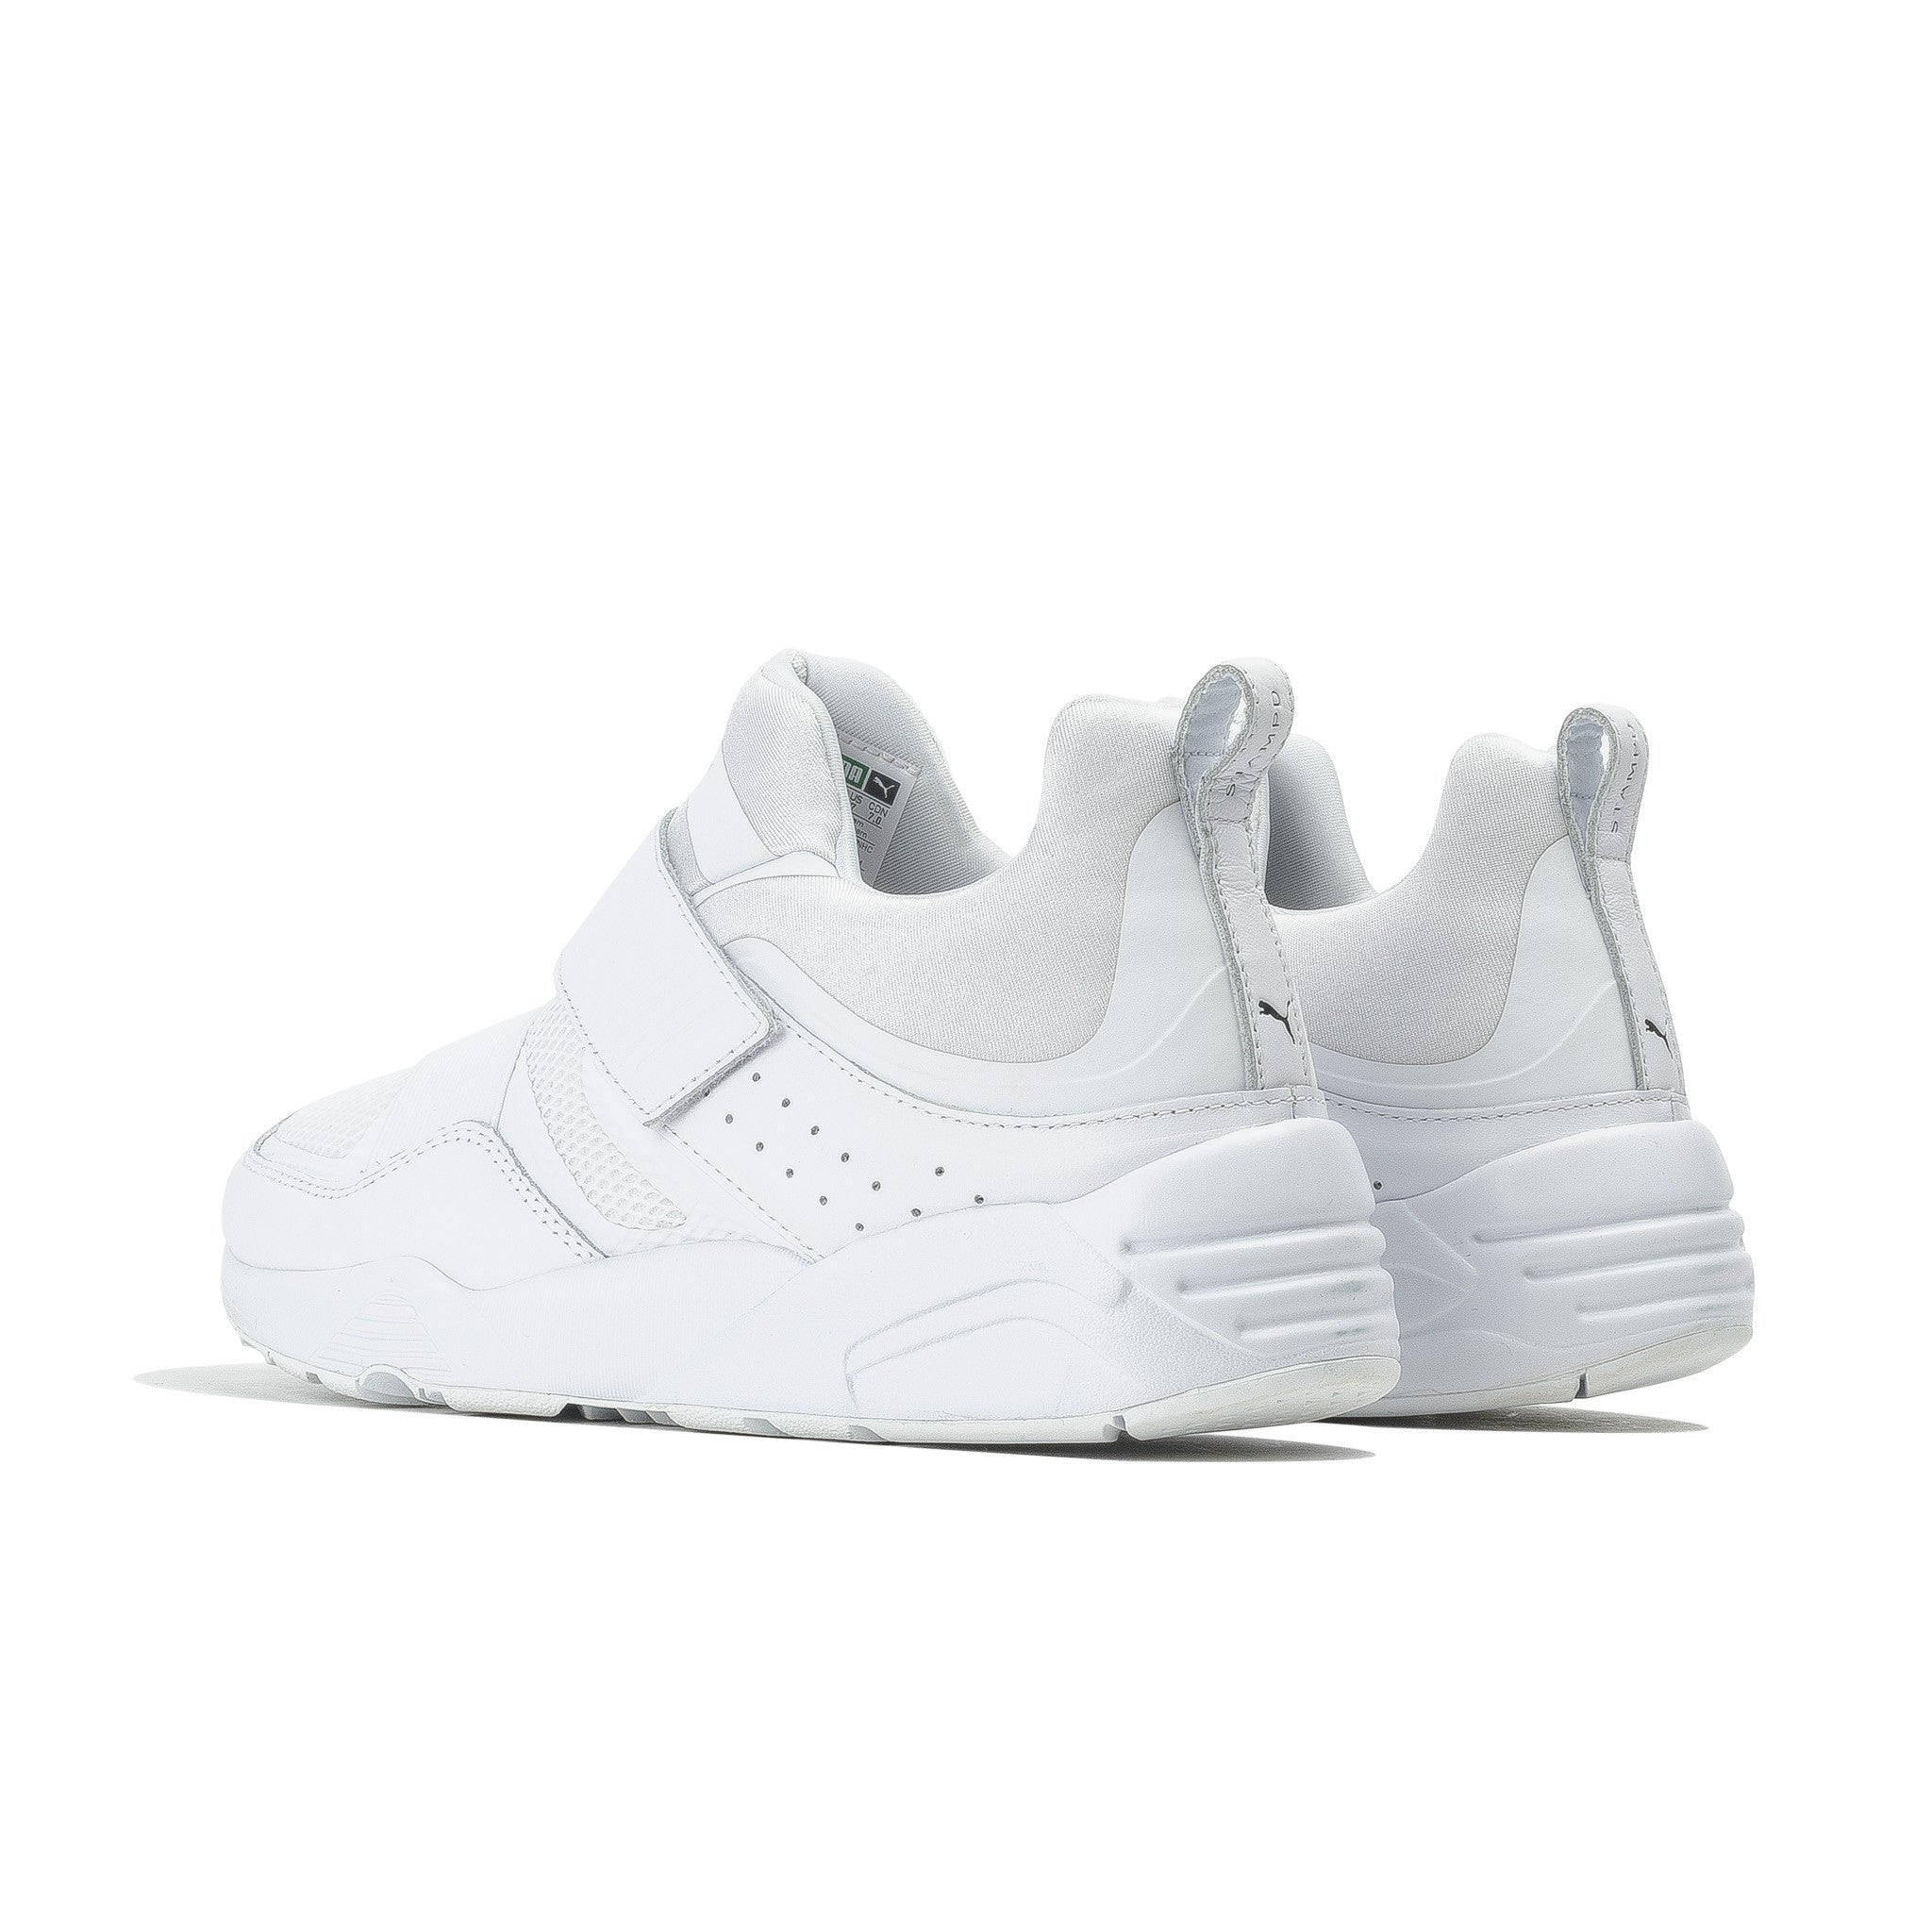 x Stampd Blaze Of Glory Strap 359813-01 White